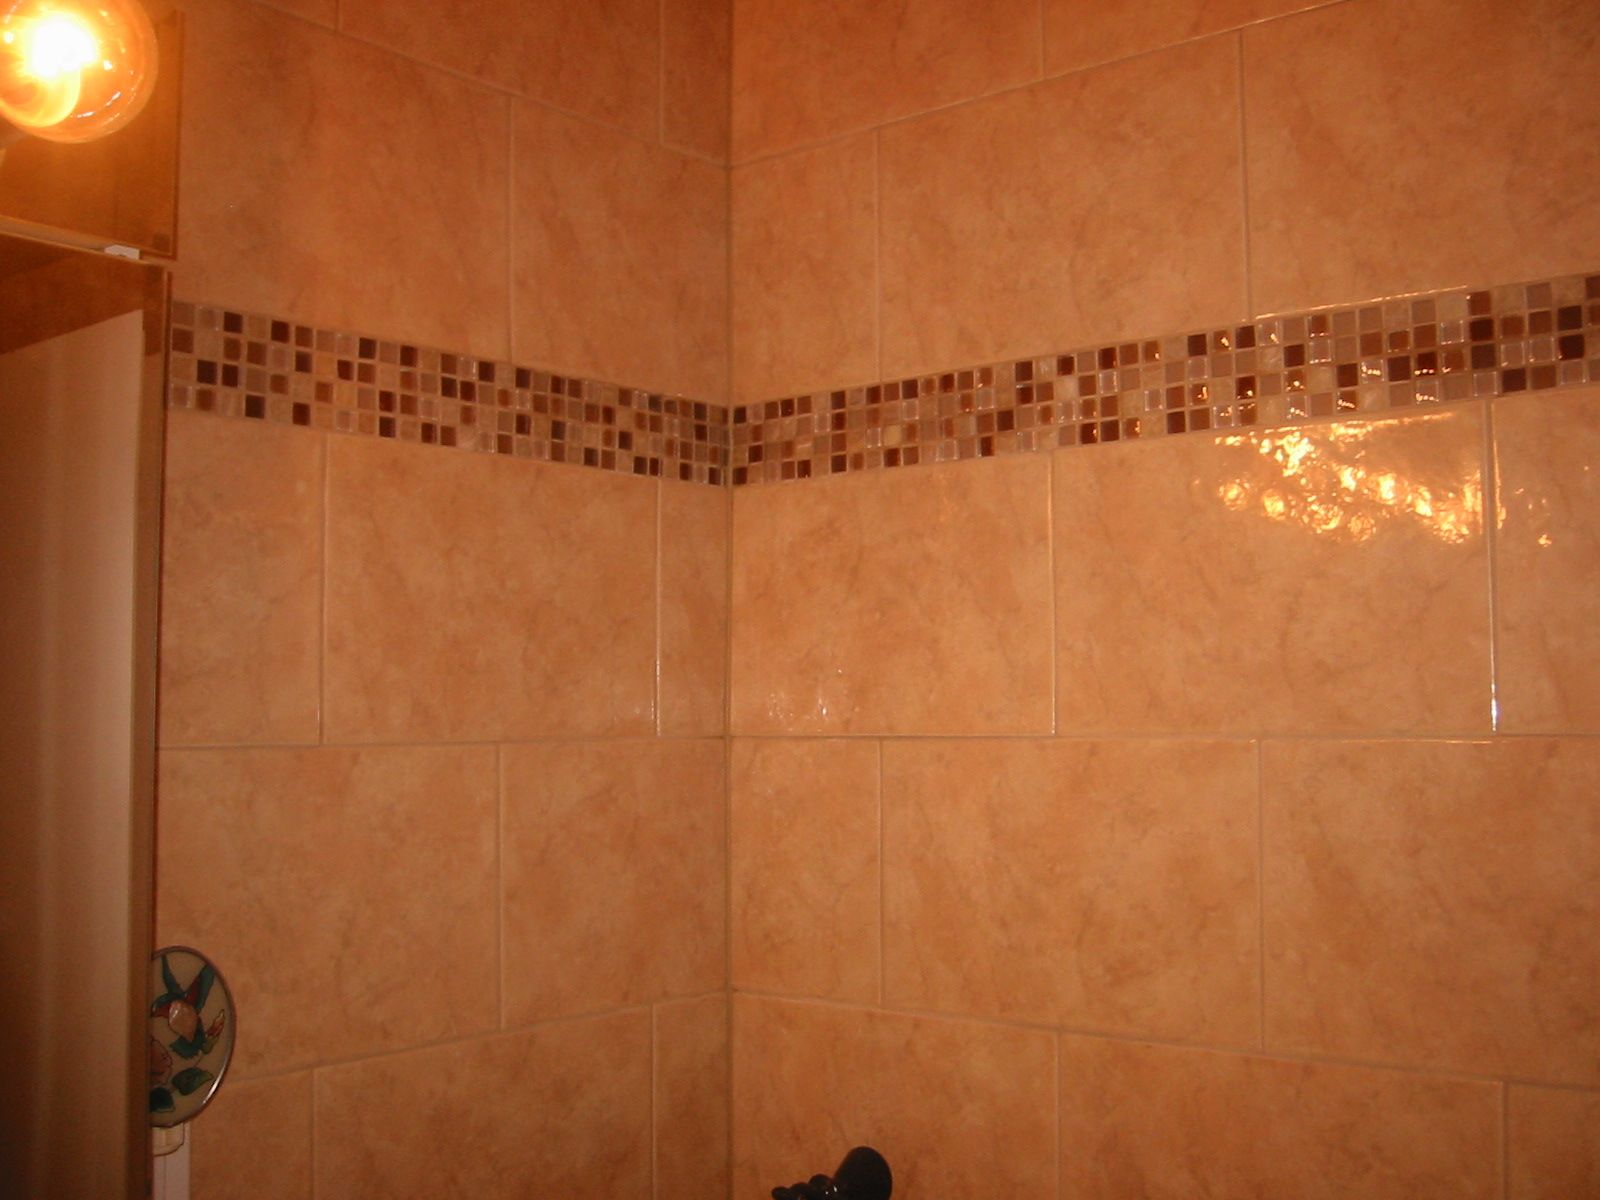 Corner ceramic tiled walls with color glass mosaic tiles as a trim ...